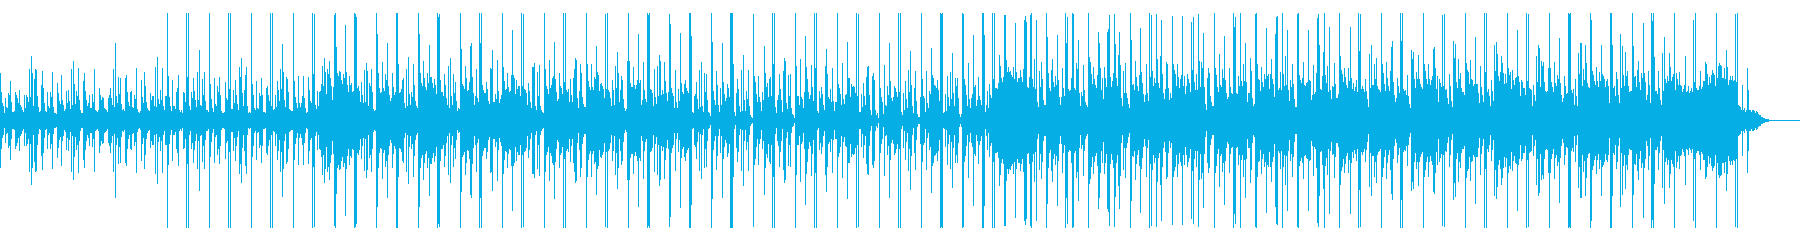 Chill-out BGM with the image of the beach's reproduced waveform